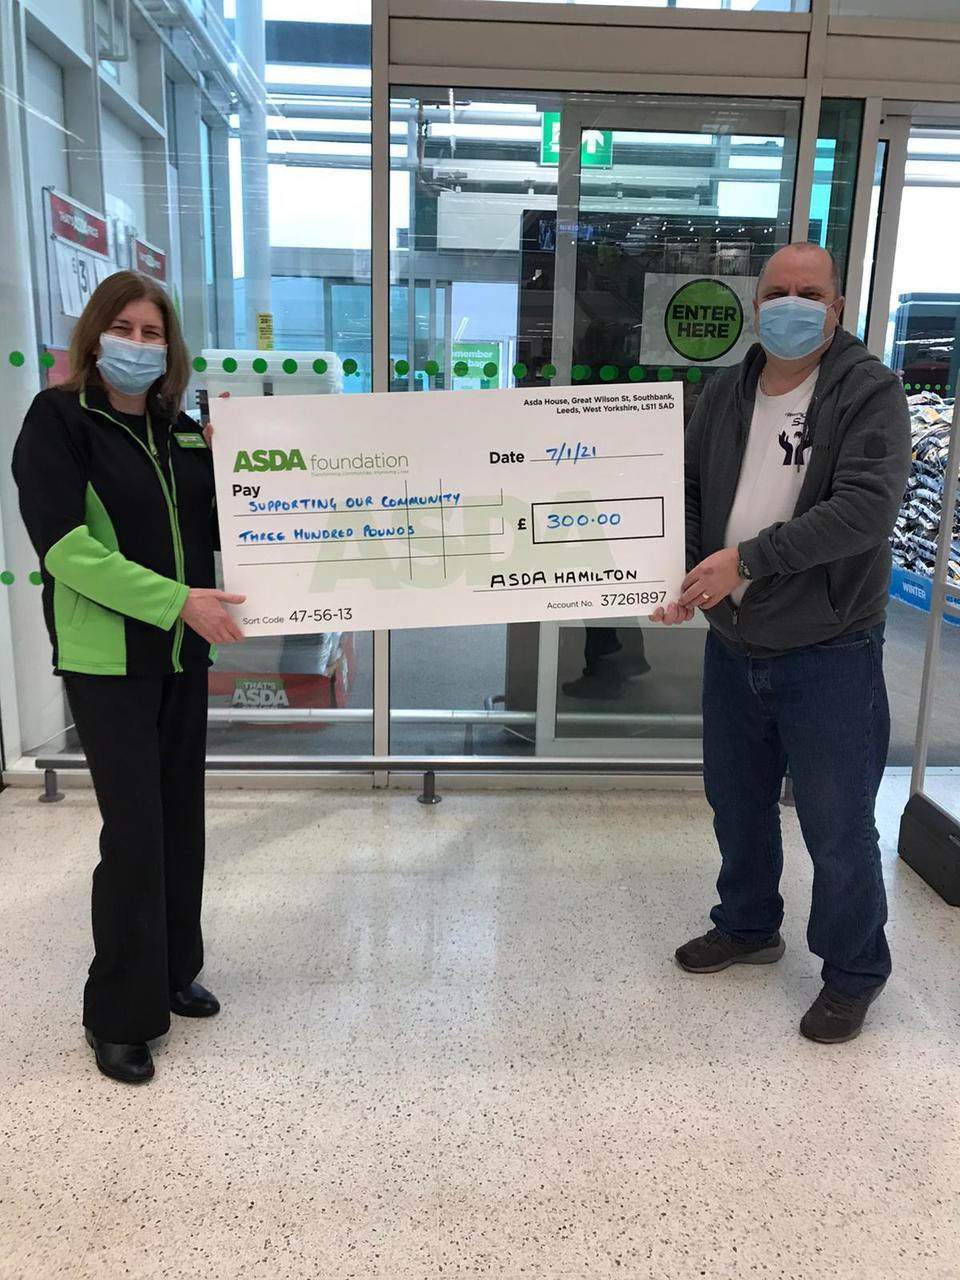 Grant to Supporting our Community | Asda Hamilton